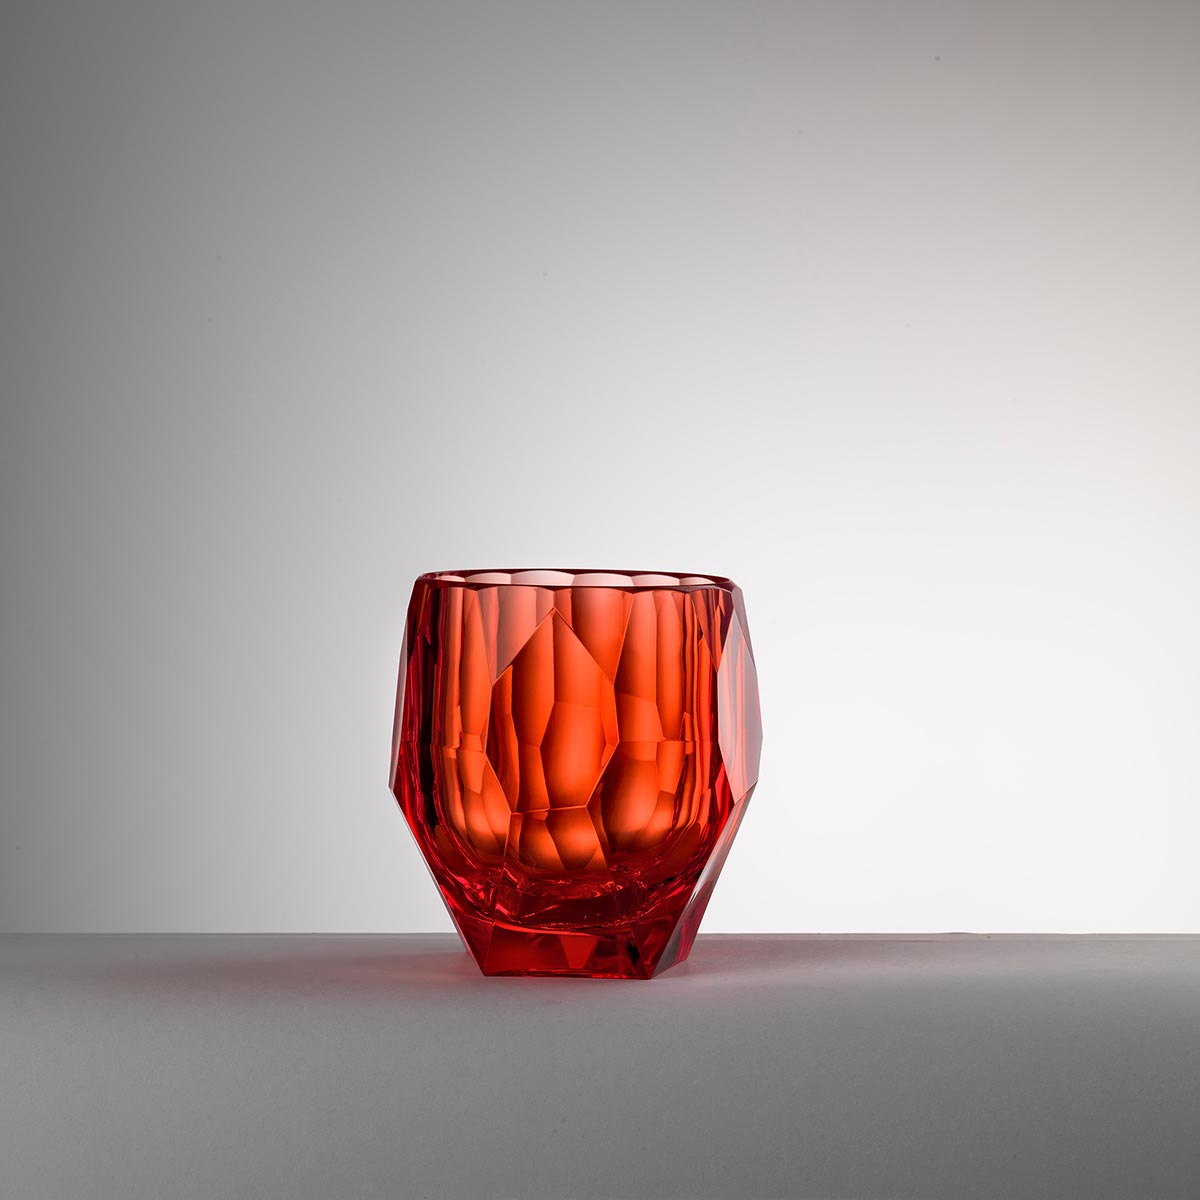 Ice bucket red<br>H: 14.3cm, D: 12cm<br>Filippo